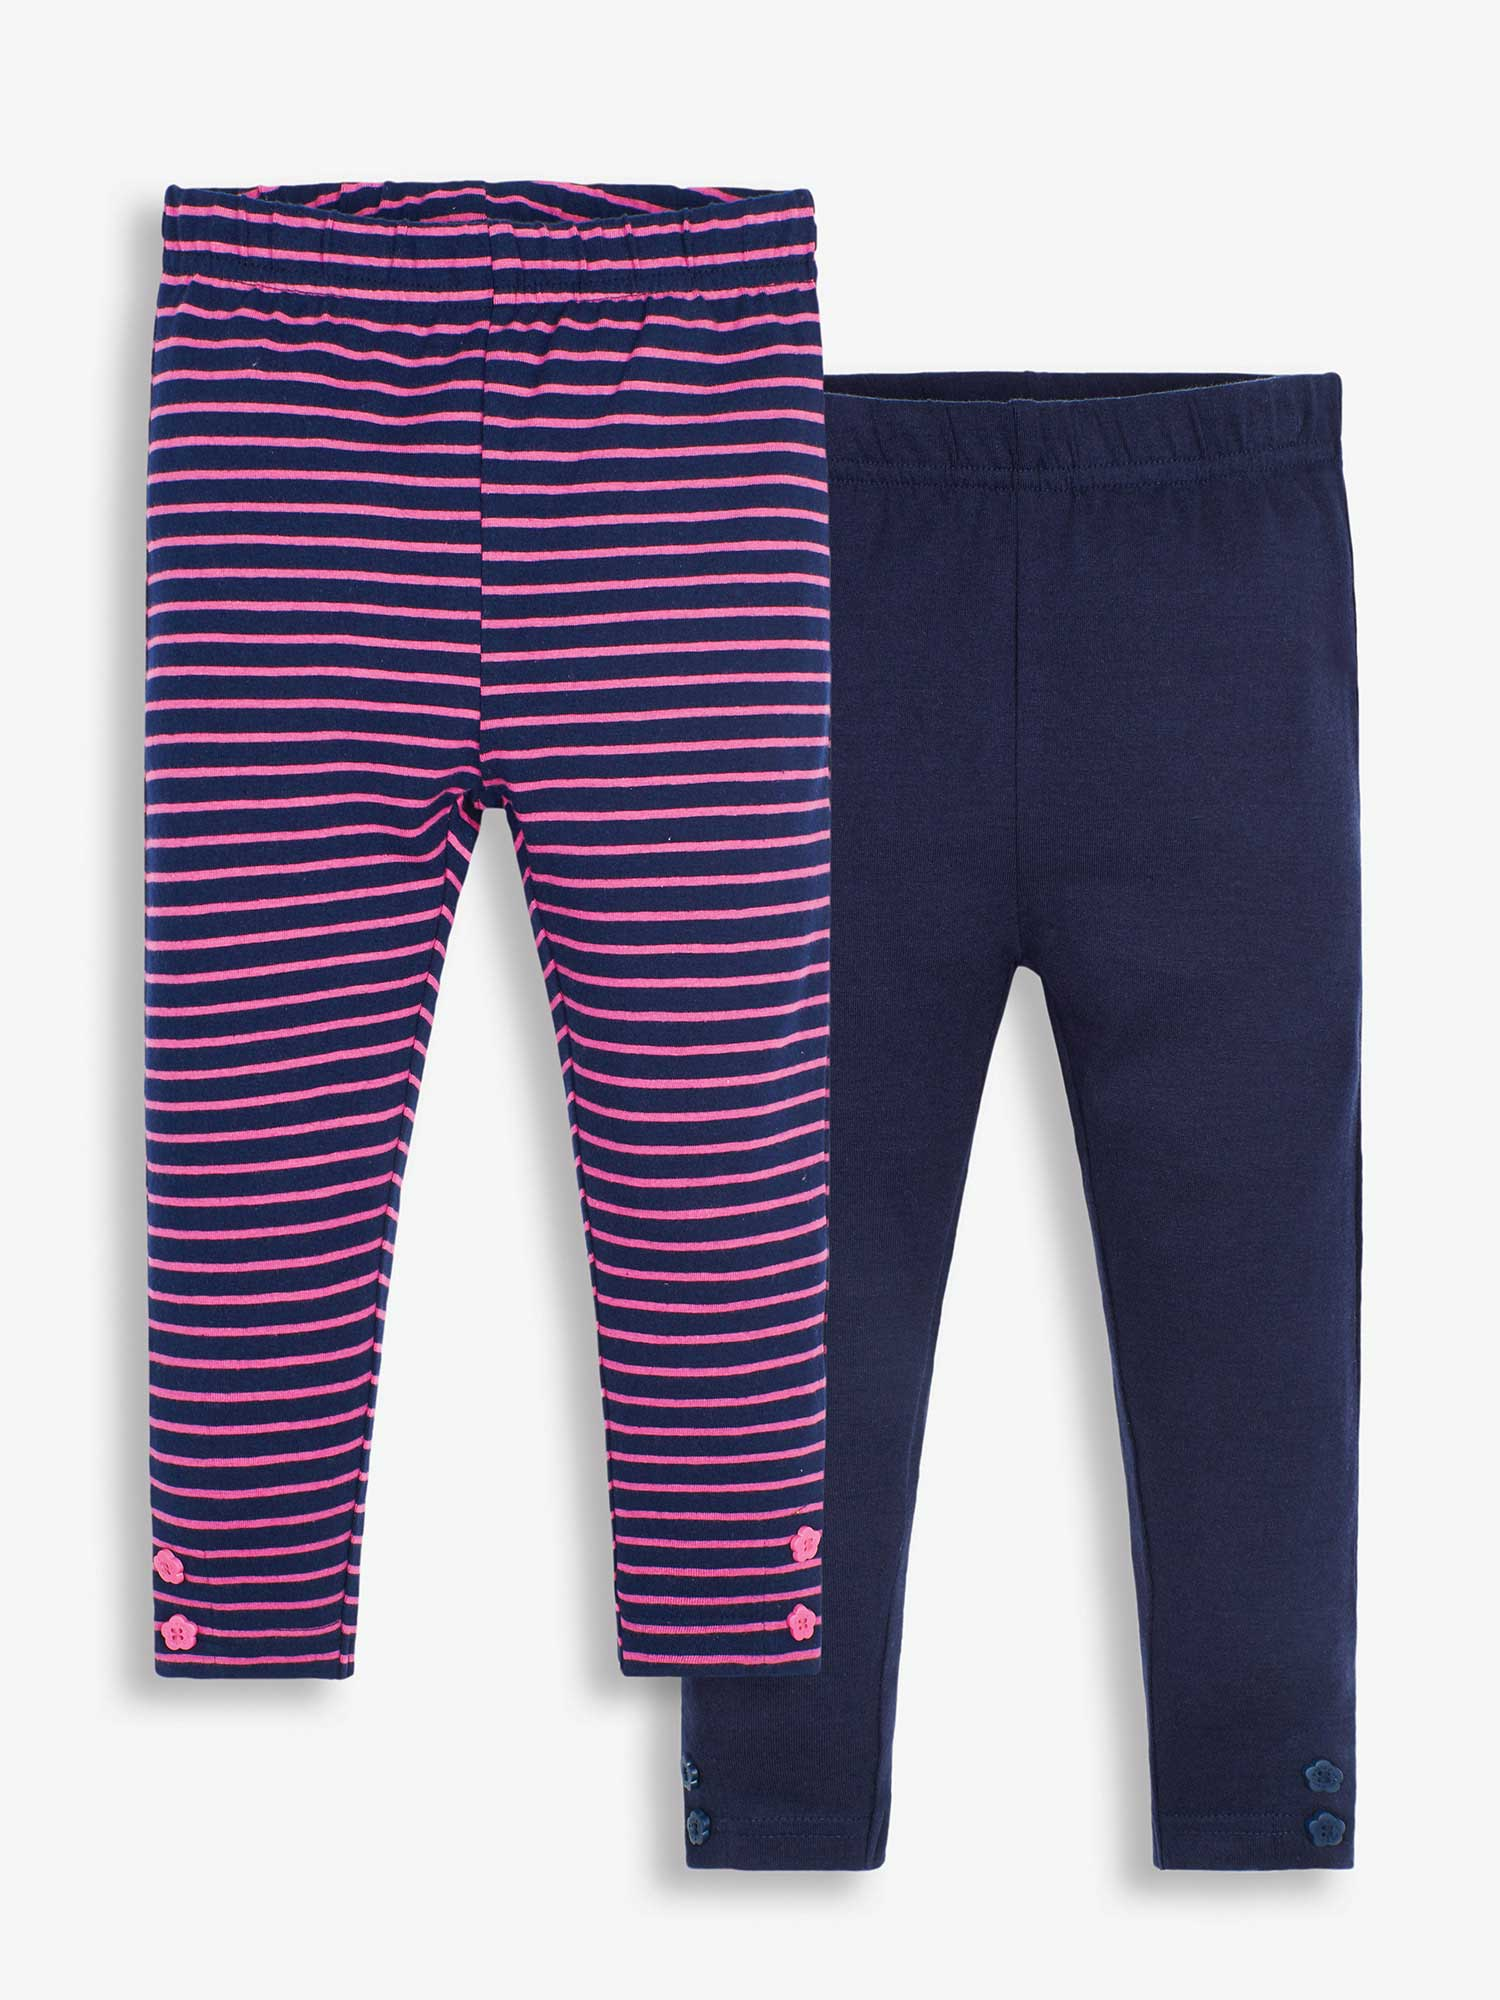 2-Pack Girls' Navy & Fuchsia Stripe Leggings